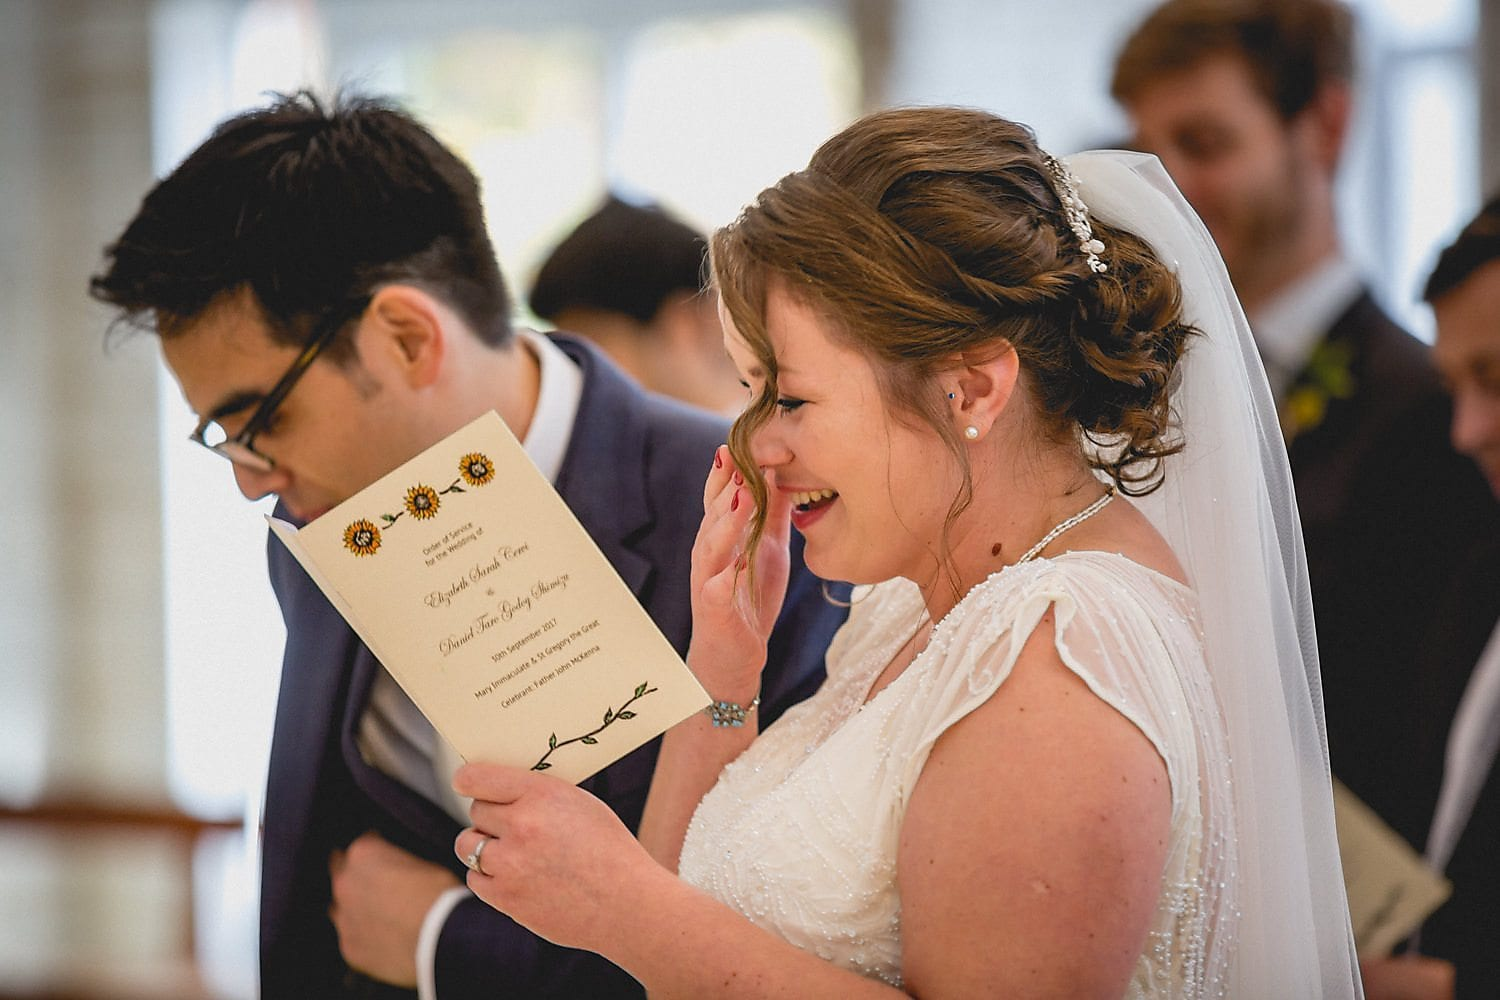 Bride Elizabeth gets emotional while reading the order of service